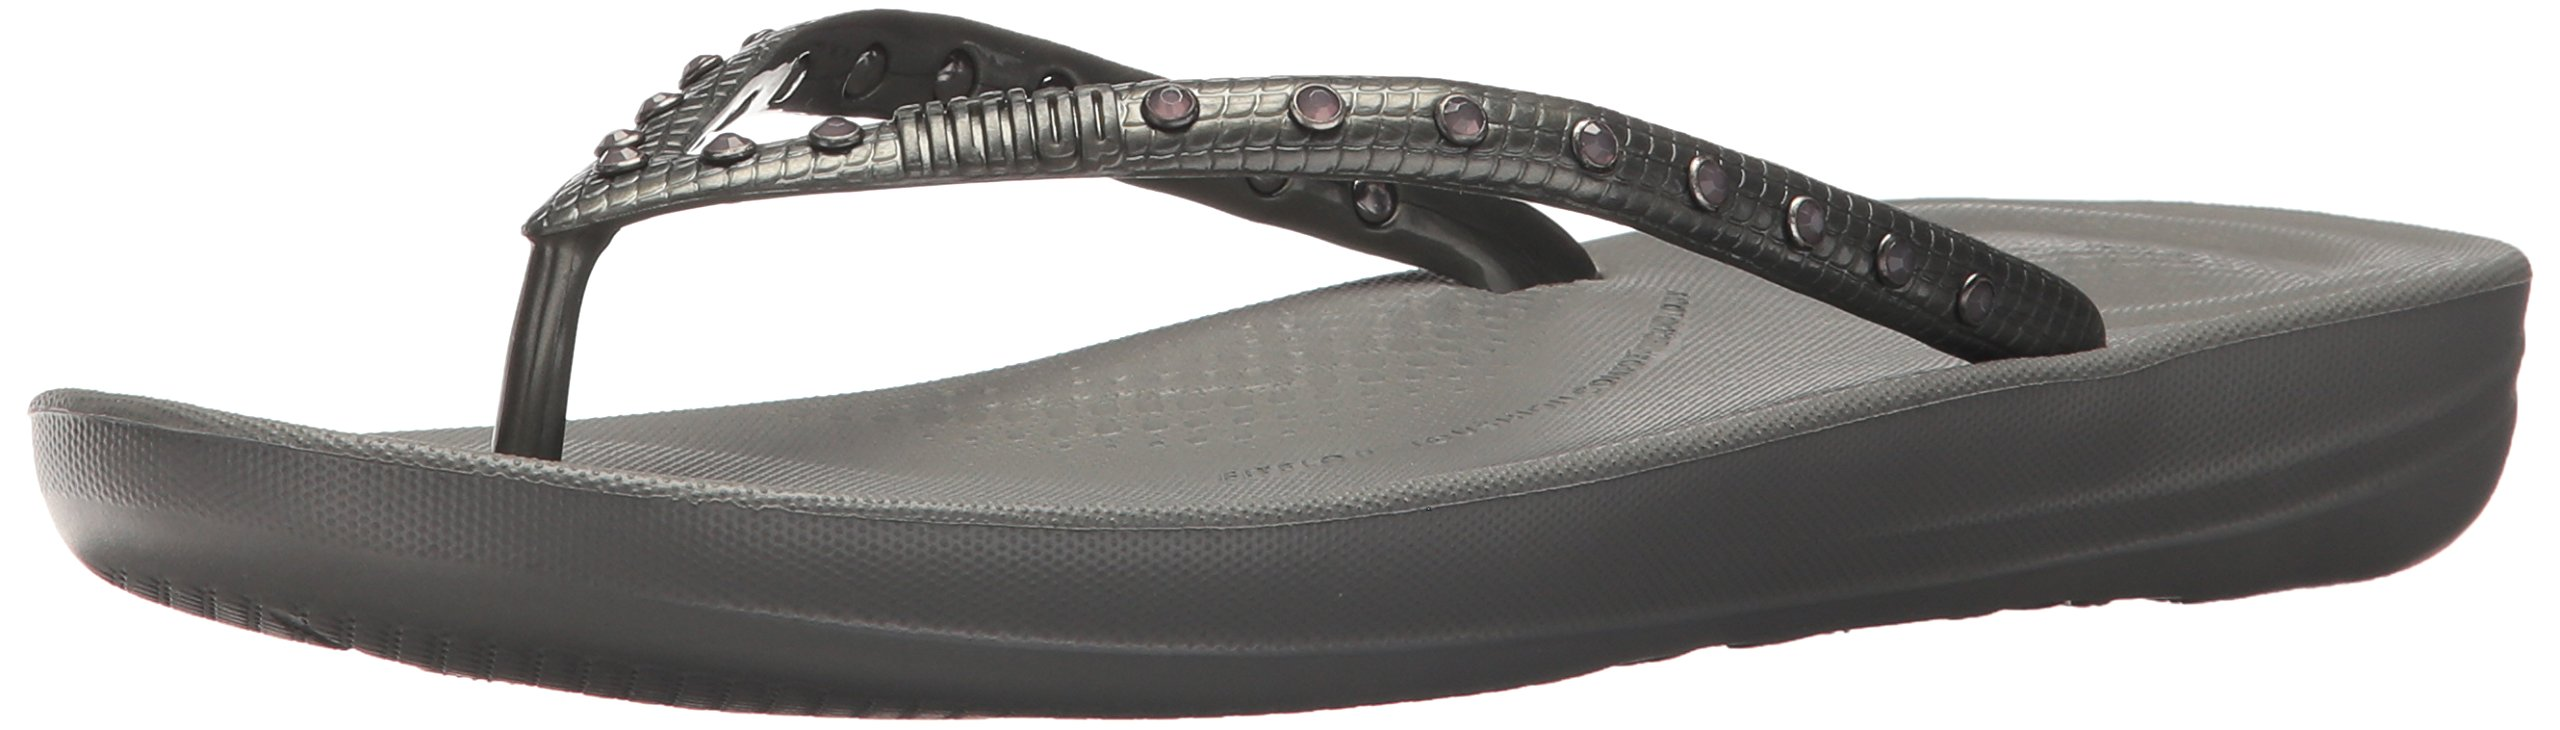 e9a74c7fdfb5f Galleon - FitFlop Women s IQUSHION Ergonomic FLIP Flops-Crystal Slide  Sandal